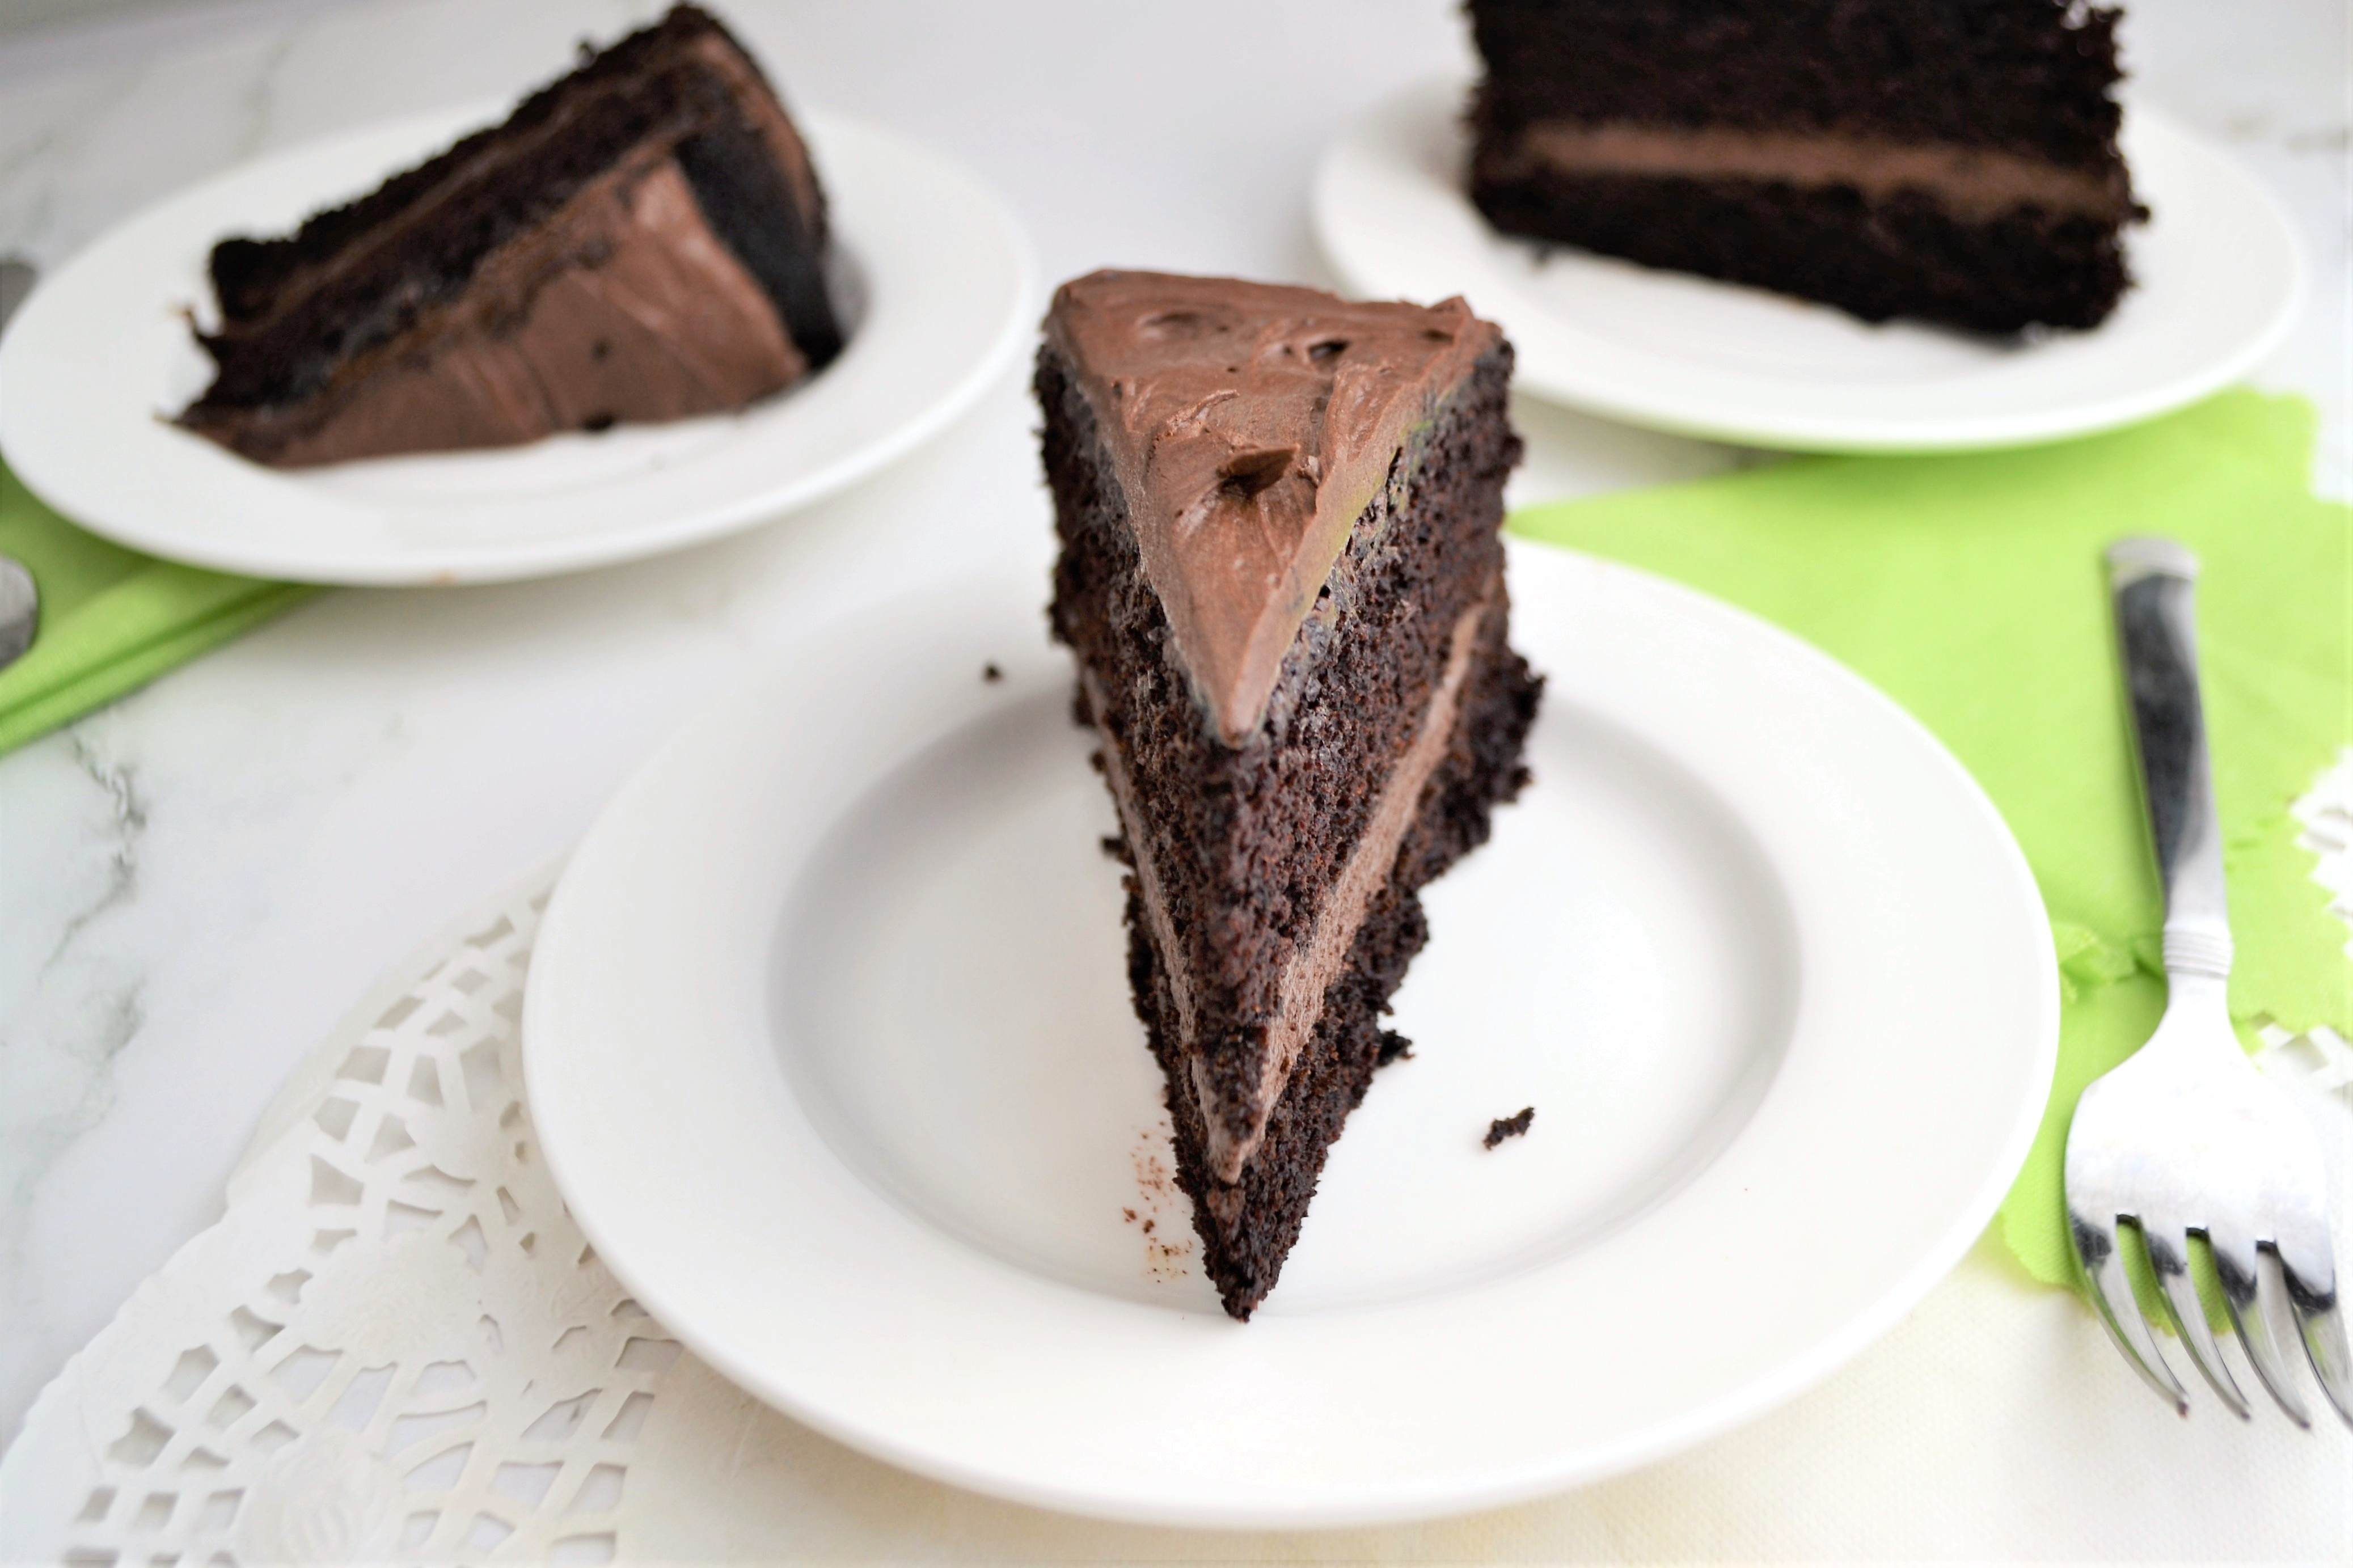 Gluten Free Chocolate Cake with Chocolate Frosting